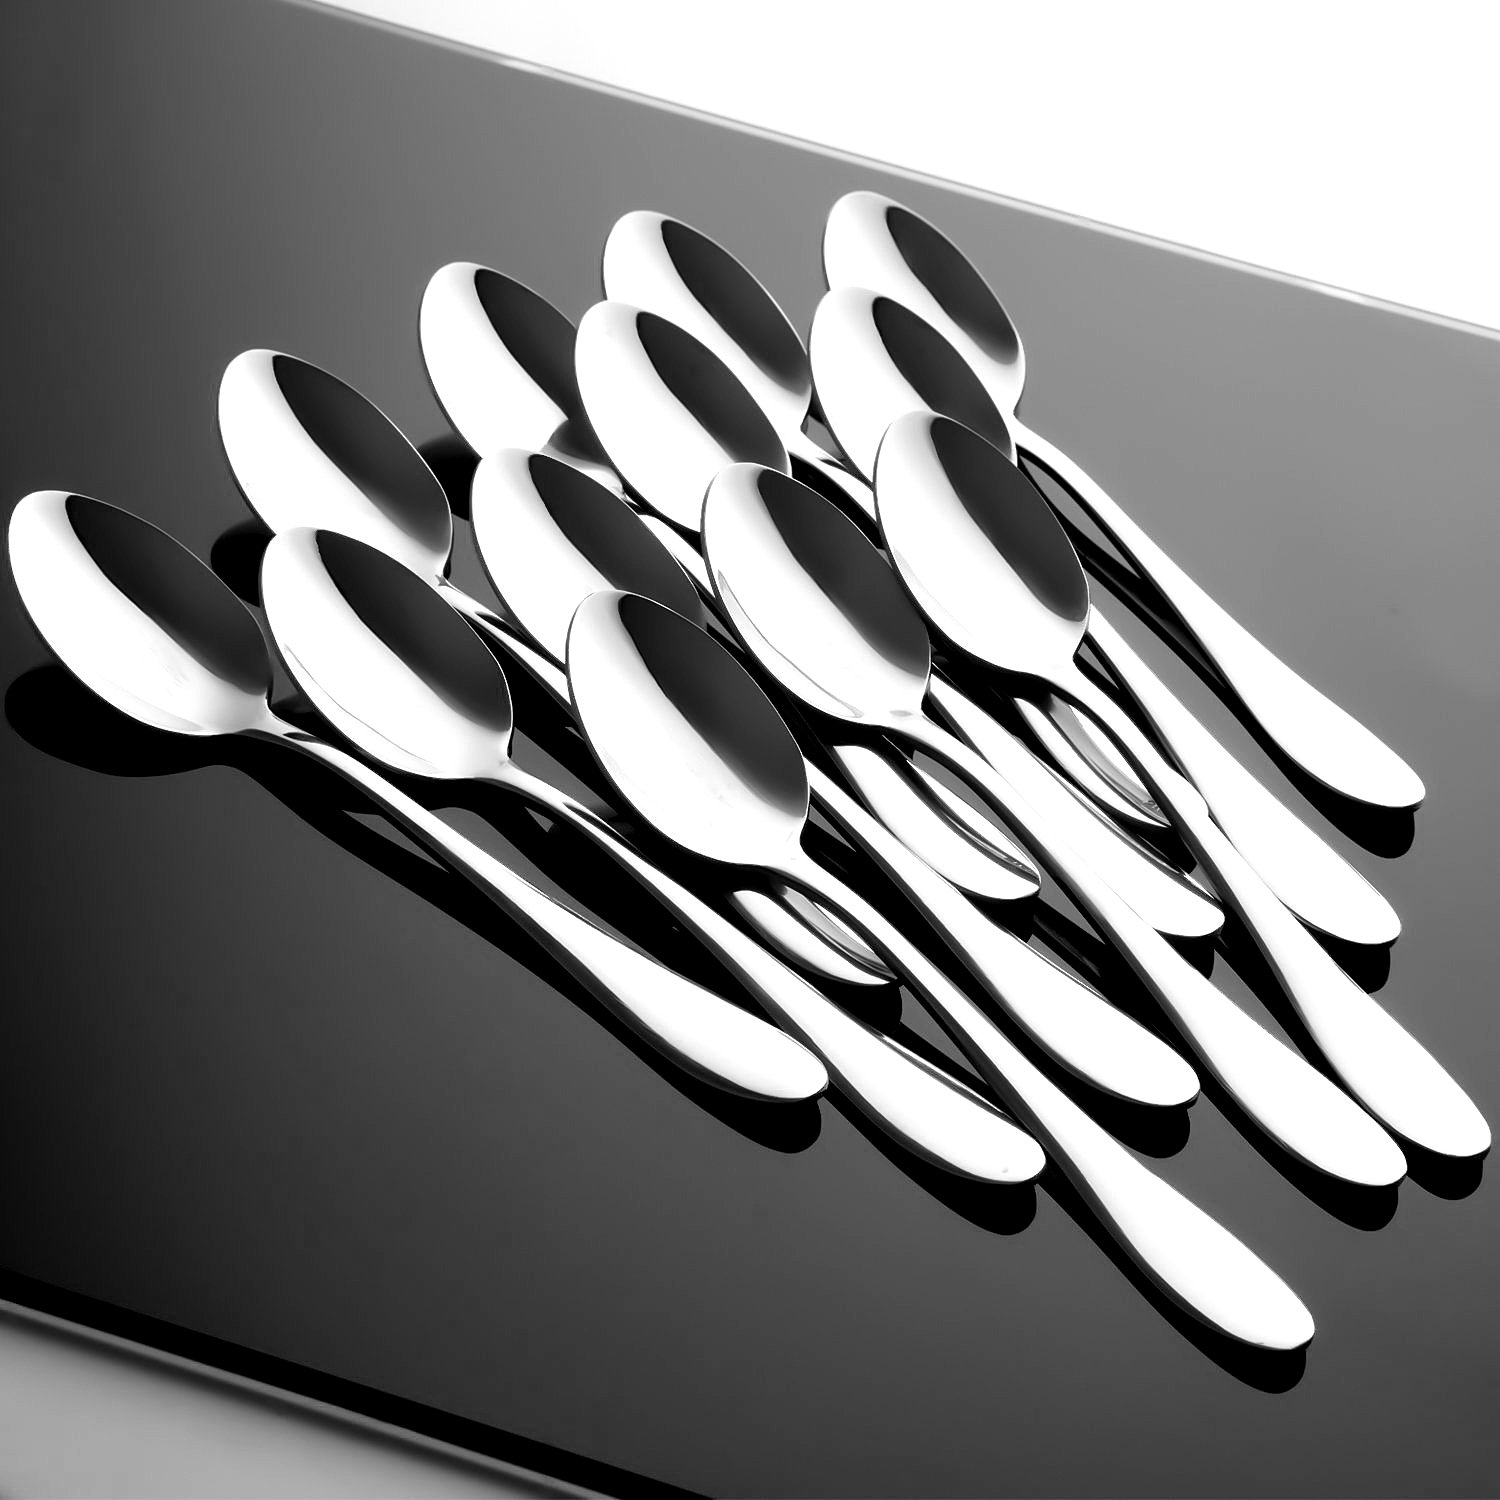 Hiware 12-piece Extra-Fine Stainless Steel Dinner Spoons, Use for Home, Kitchen or Restaurant - 7 1/3 Inches by Hiware (Image #7)